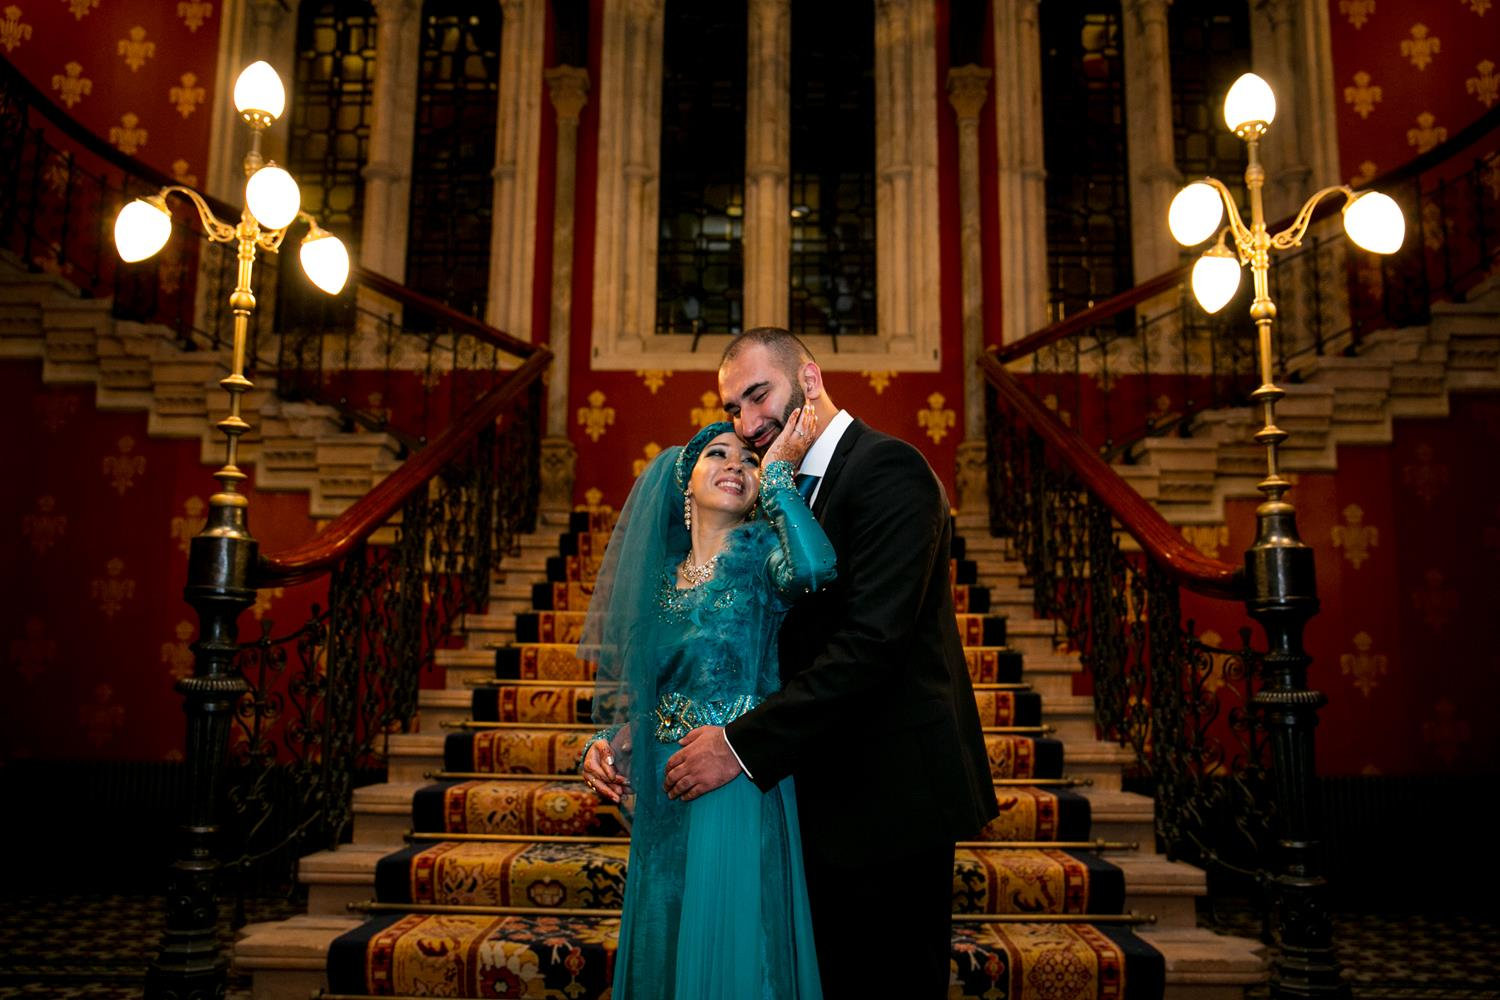 Wedding Photography of Asian Wedding couple by MAKSAM London Photographer at the Renaissance Hotel Kings Cross